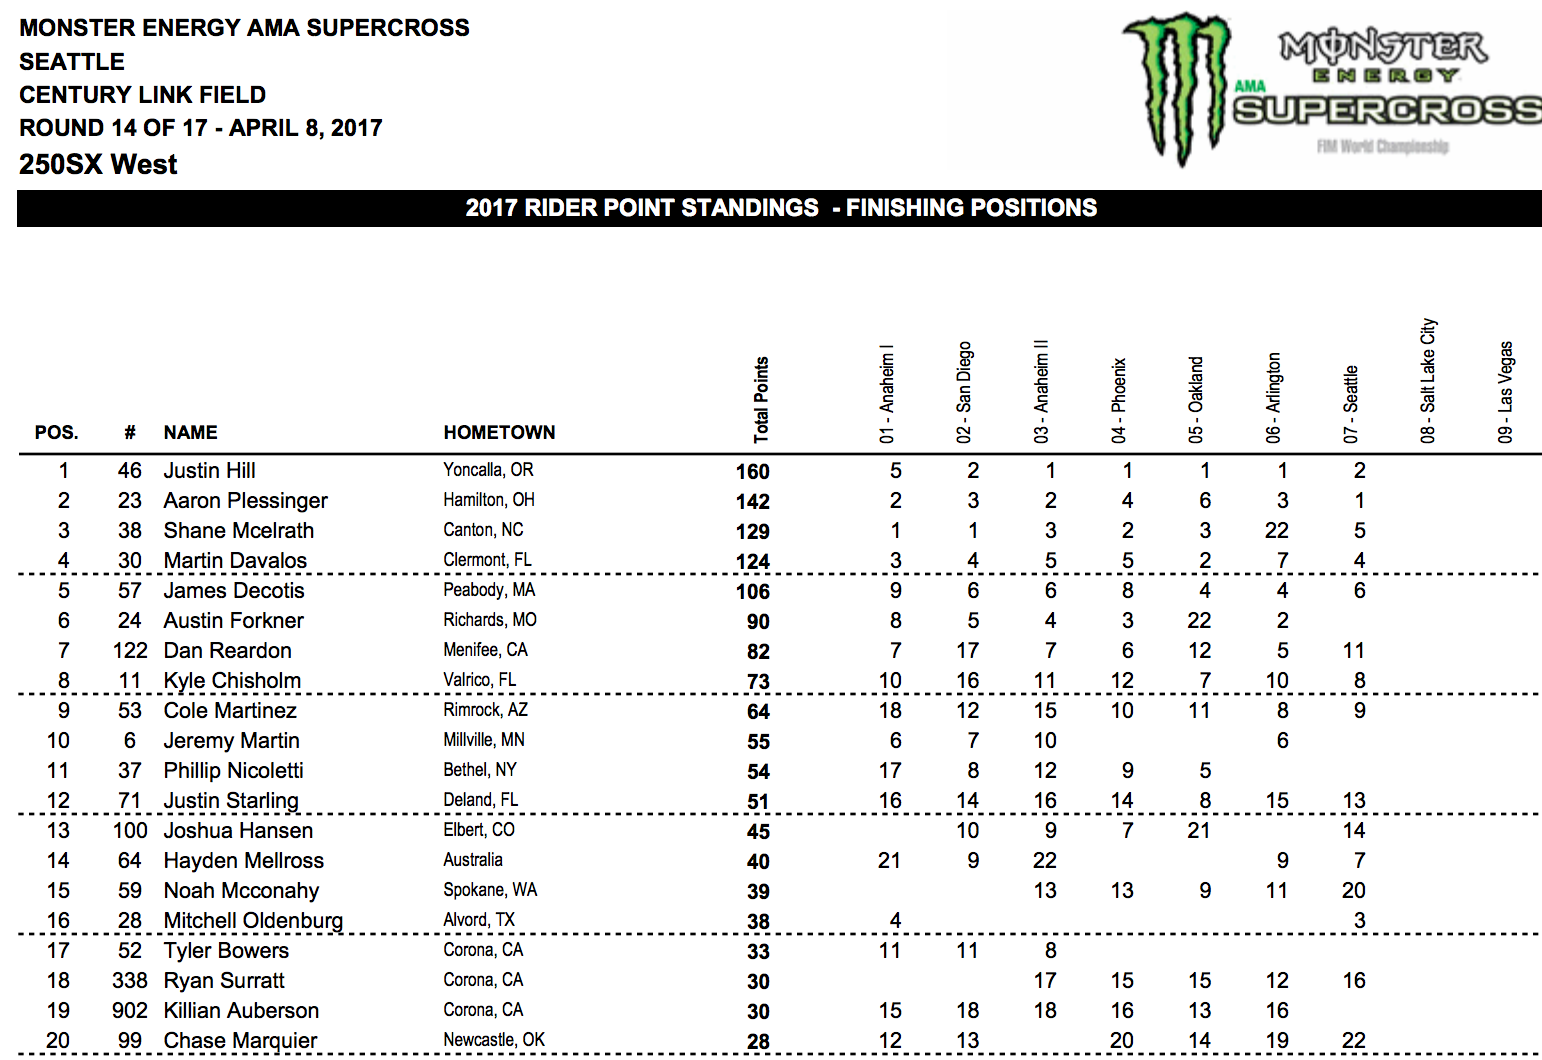 250 standings. 18 Point lead for Hill.